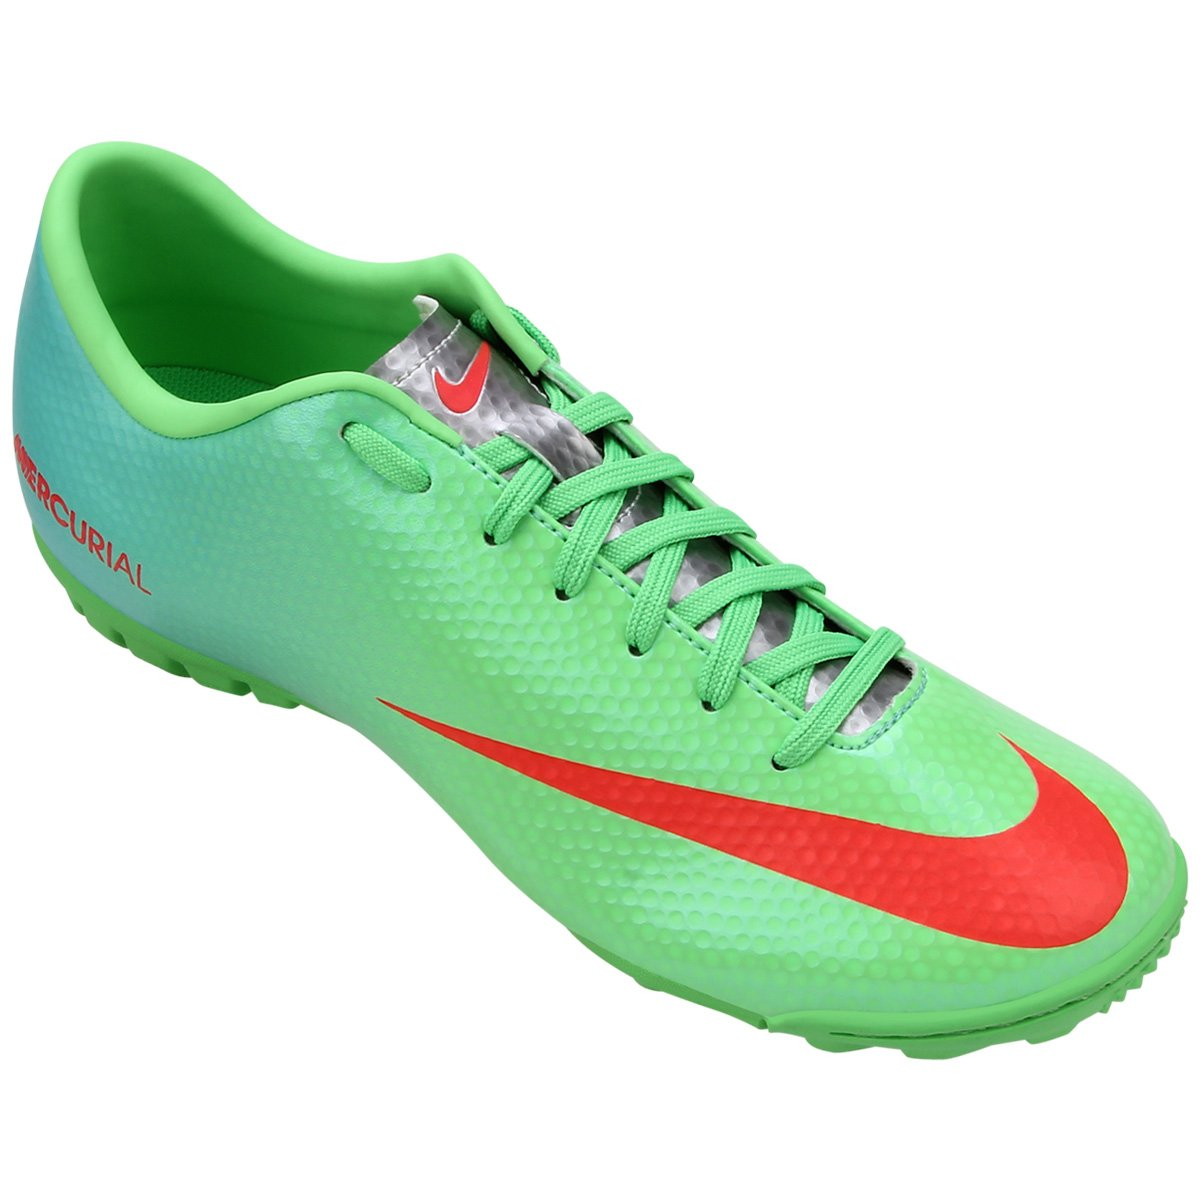 1f21d40b06fe3 netherlands chuteira society nike mercurial victory 4 tf masculina compre  agora netshoes ea069 7a5ac